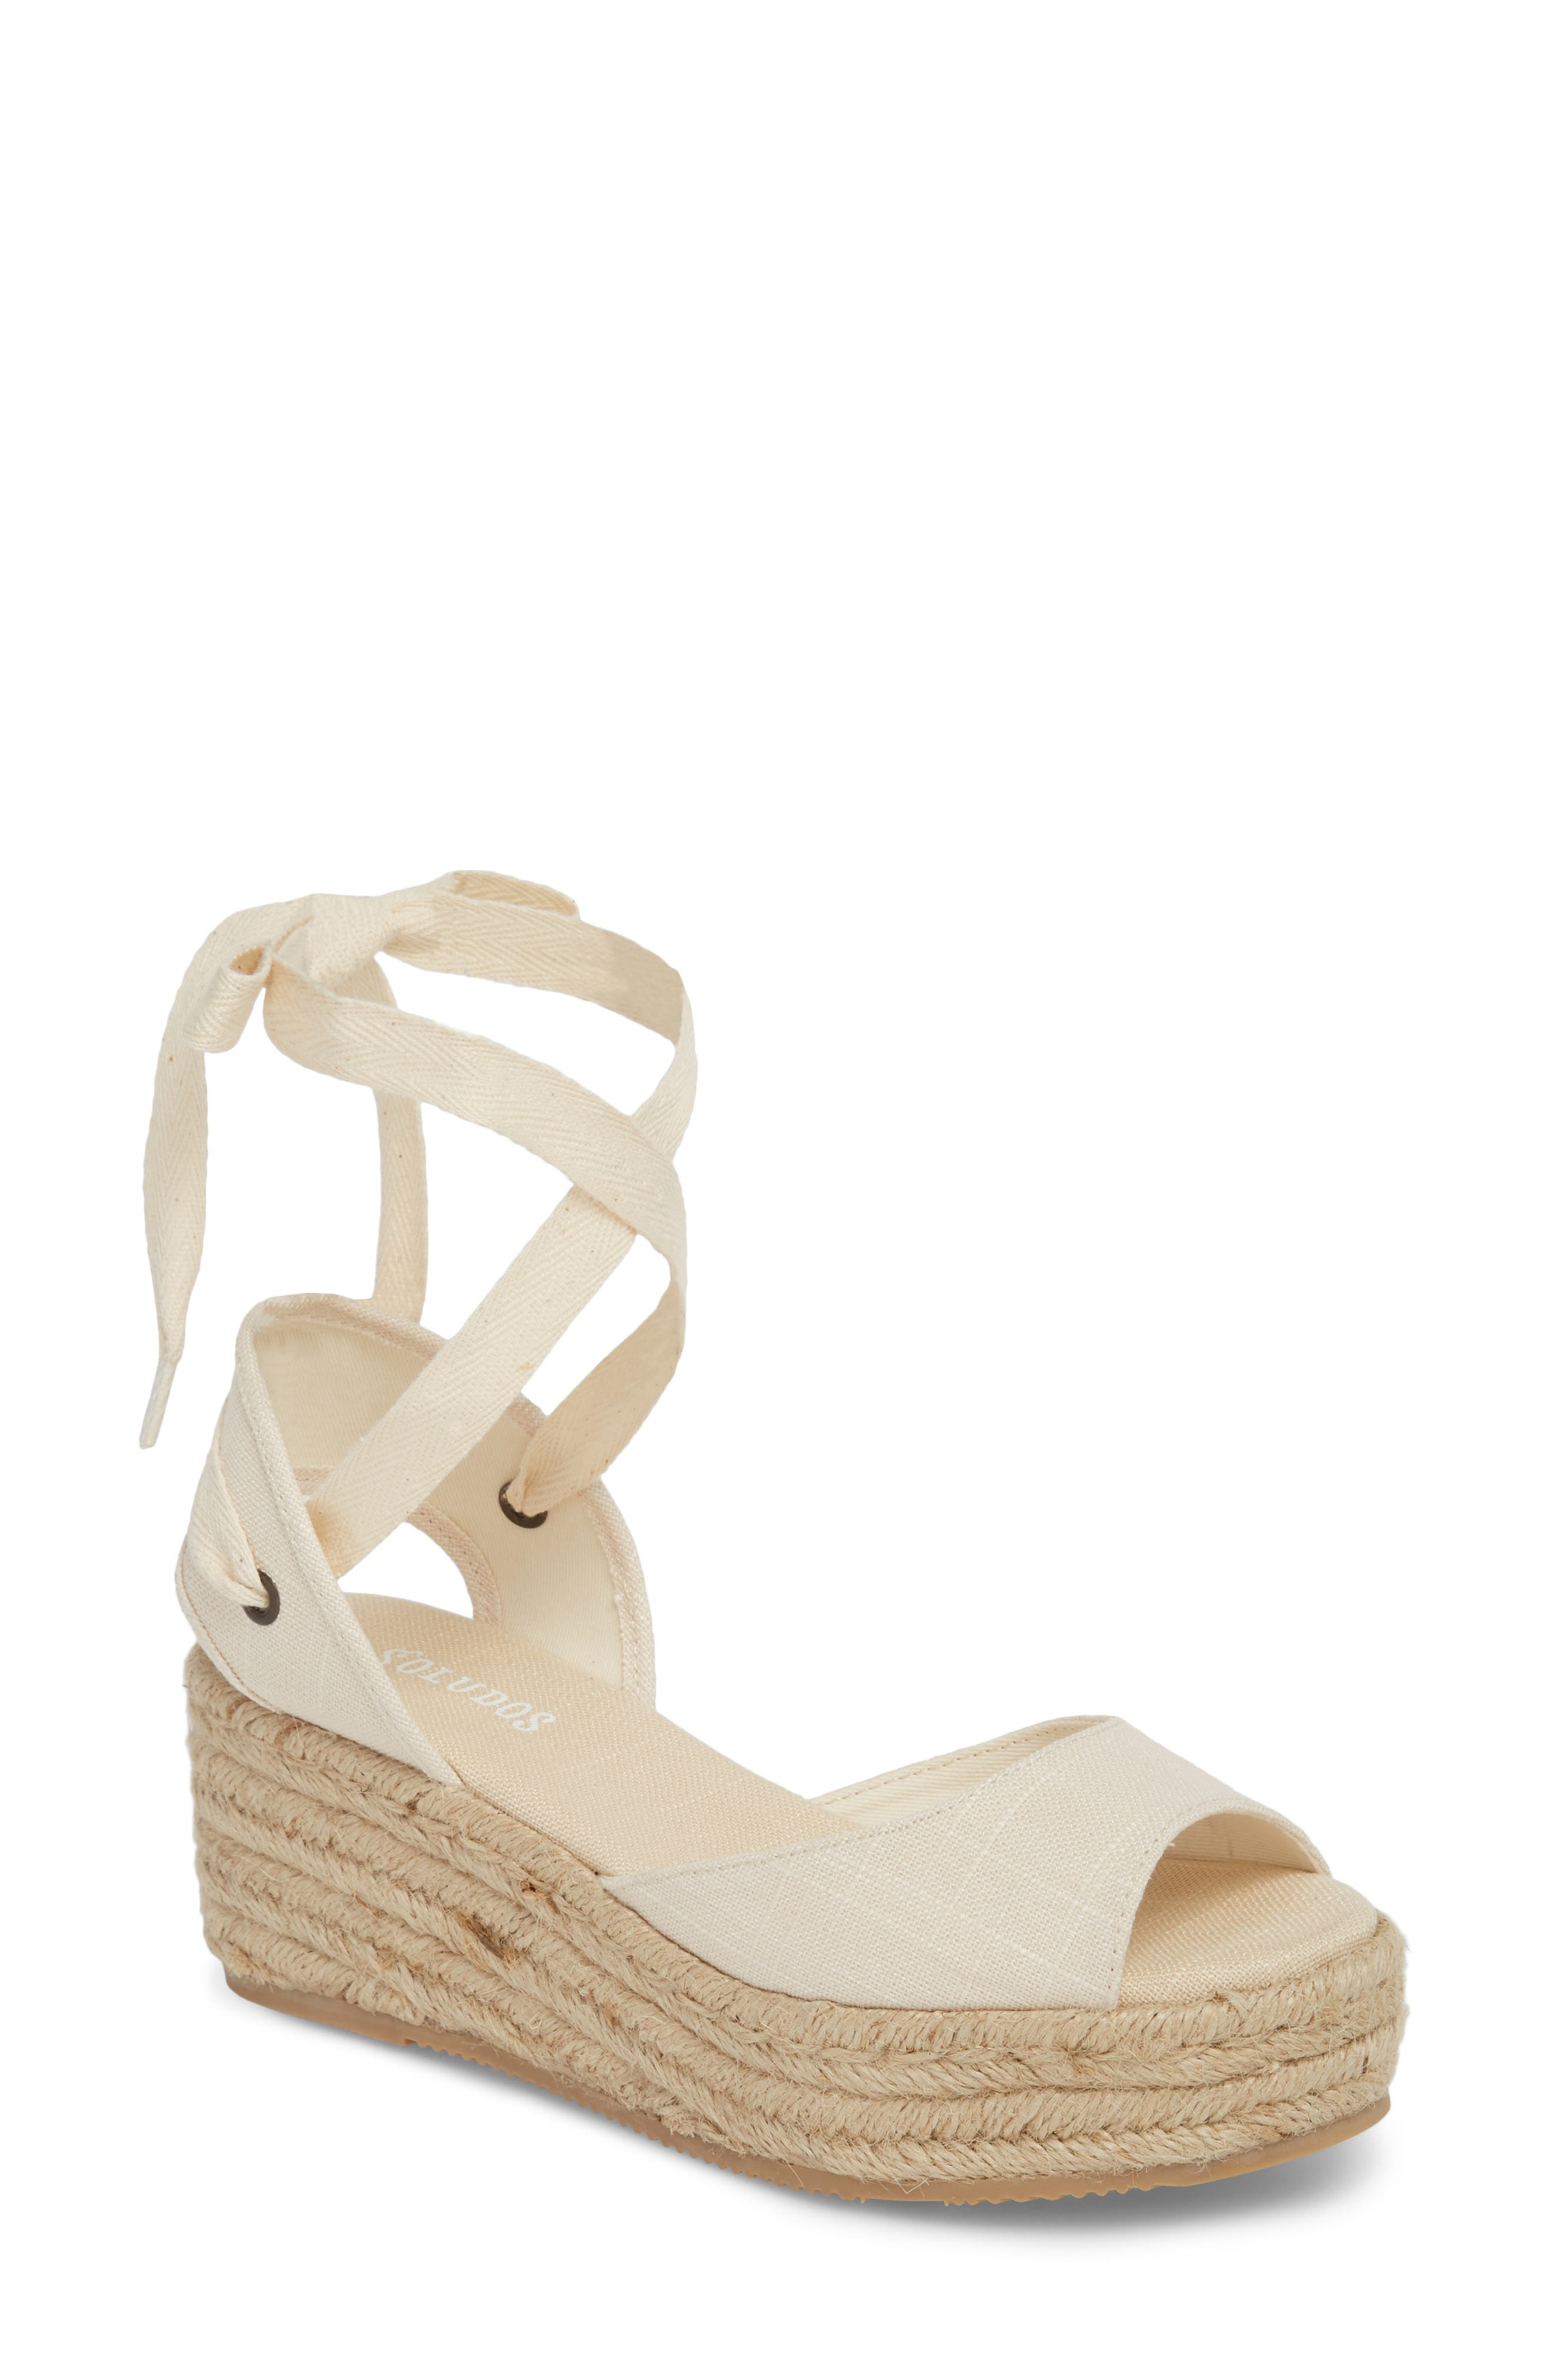 Espadrille Platform Sandal,                             Main thumbnail 1, color,                             BLUSH FABRIC